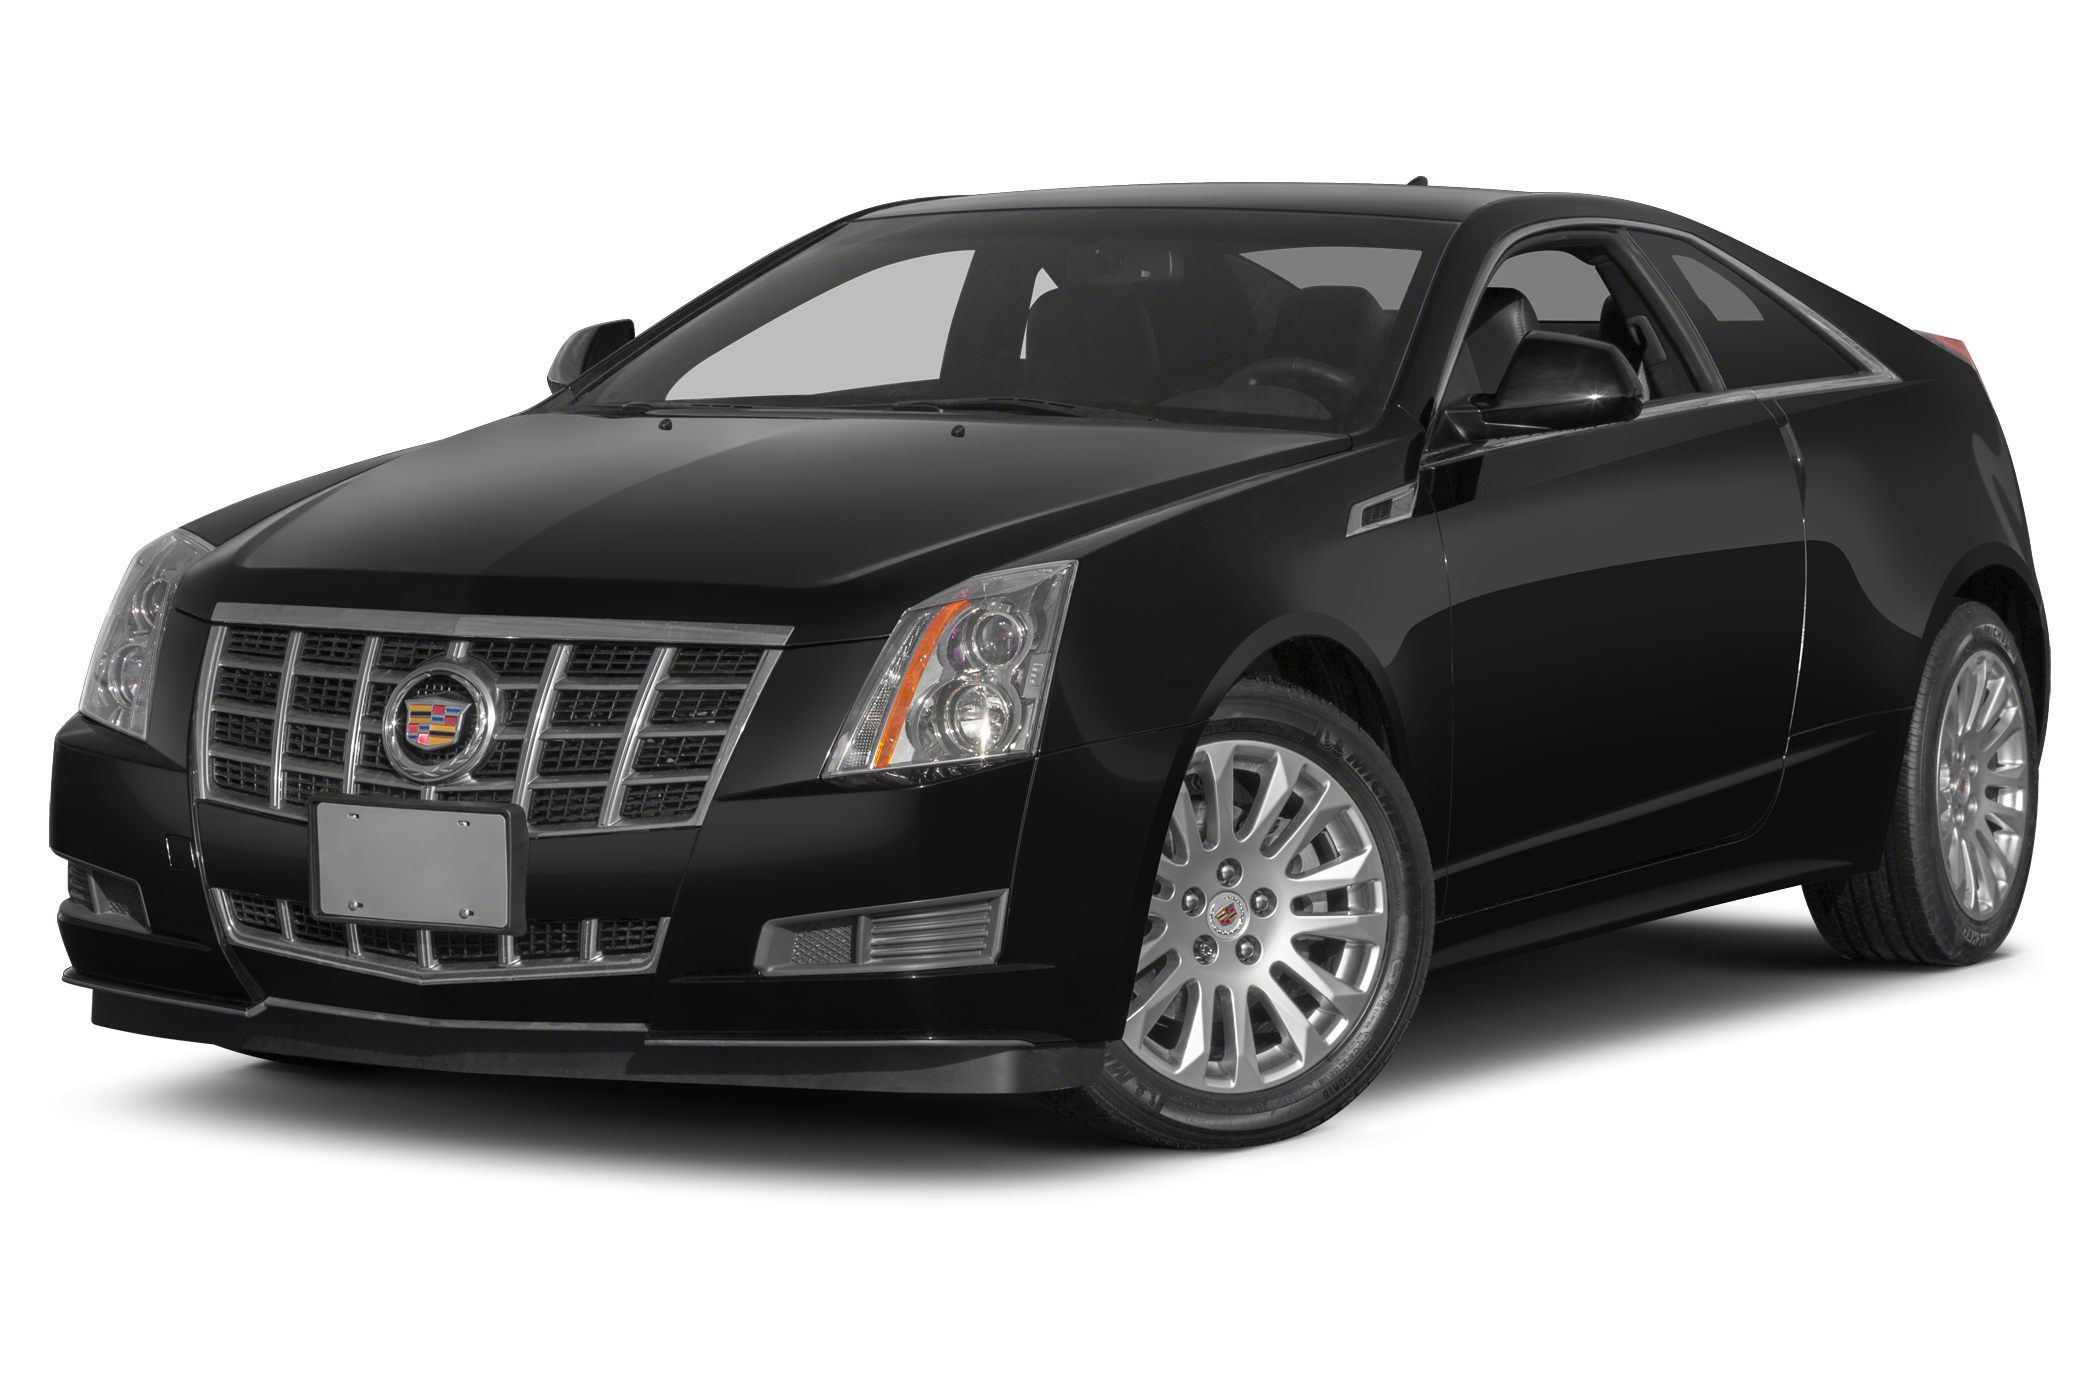 2014 Cadillac CTS Base AWESOME JET BLACK CADILLAC COUPE MULLINAX CERTIFIED PRE-OWNED means y